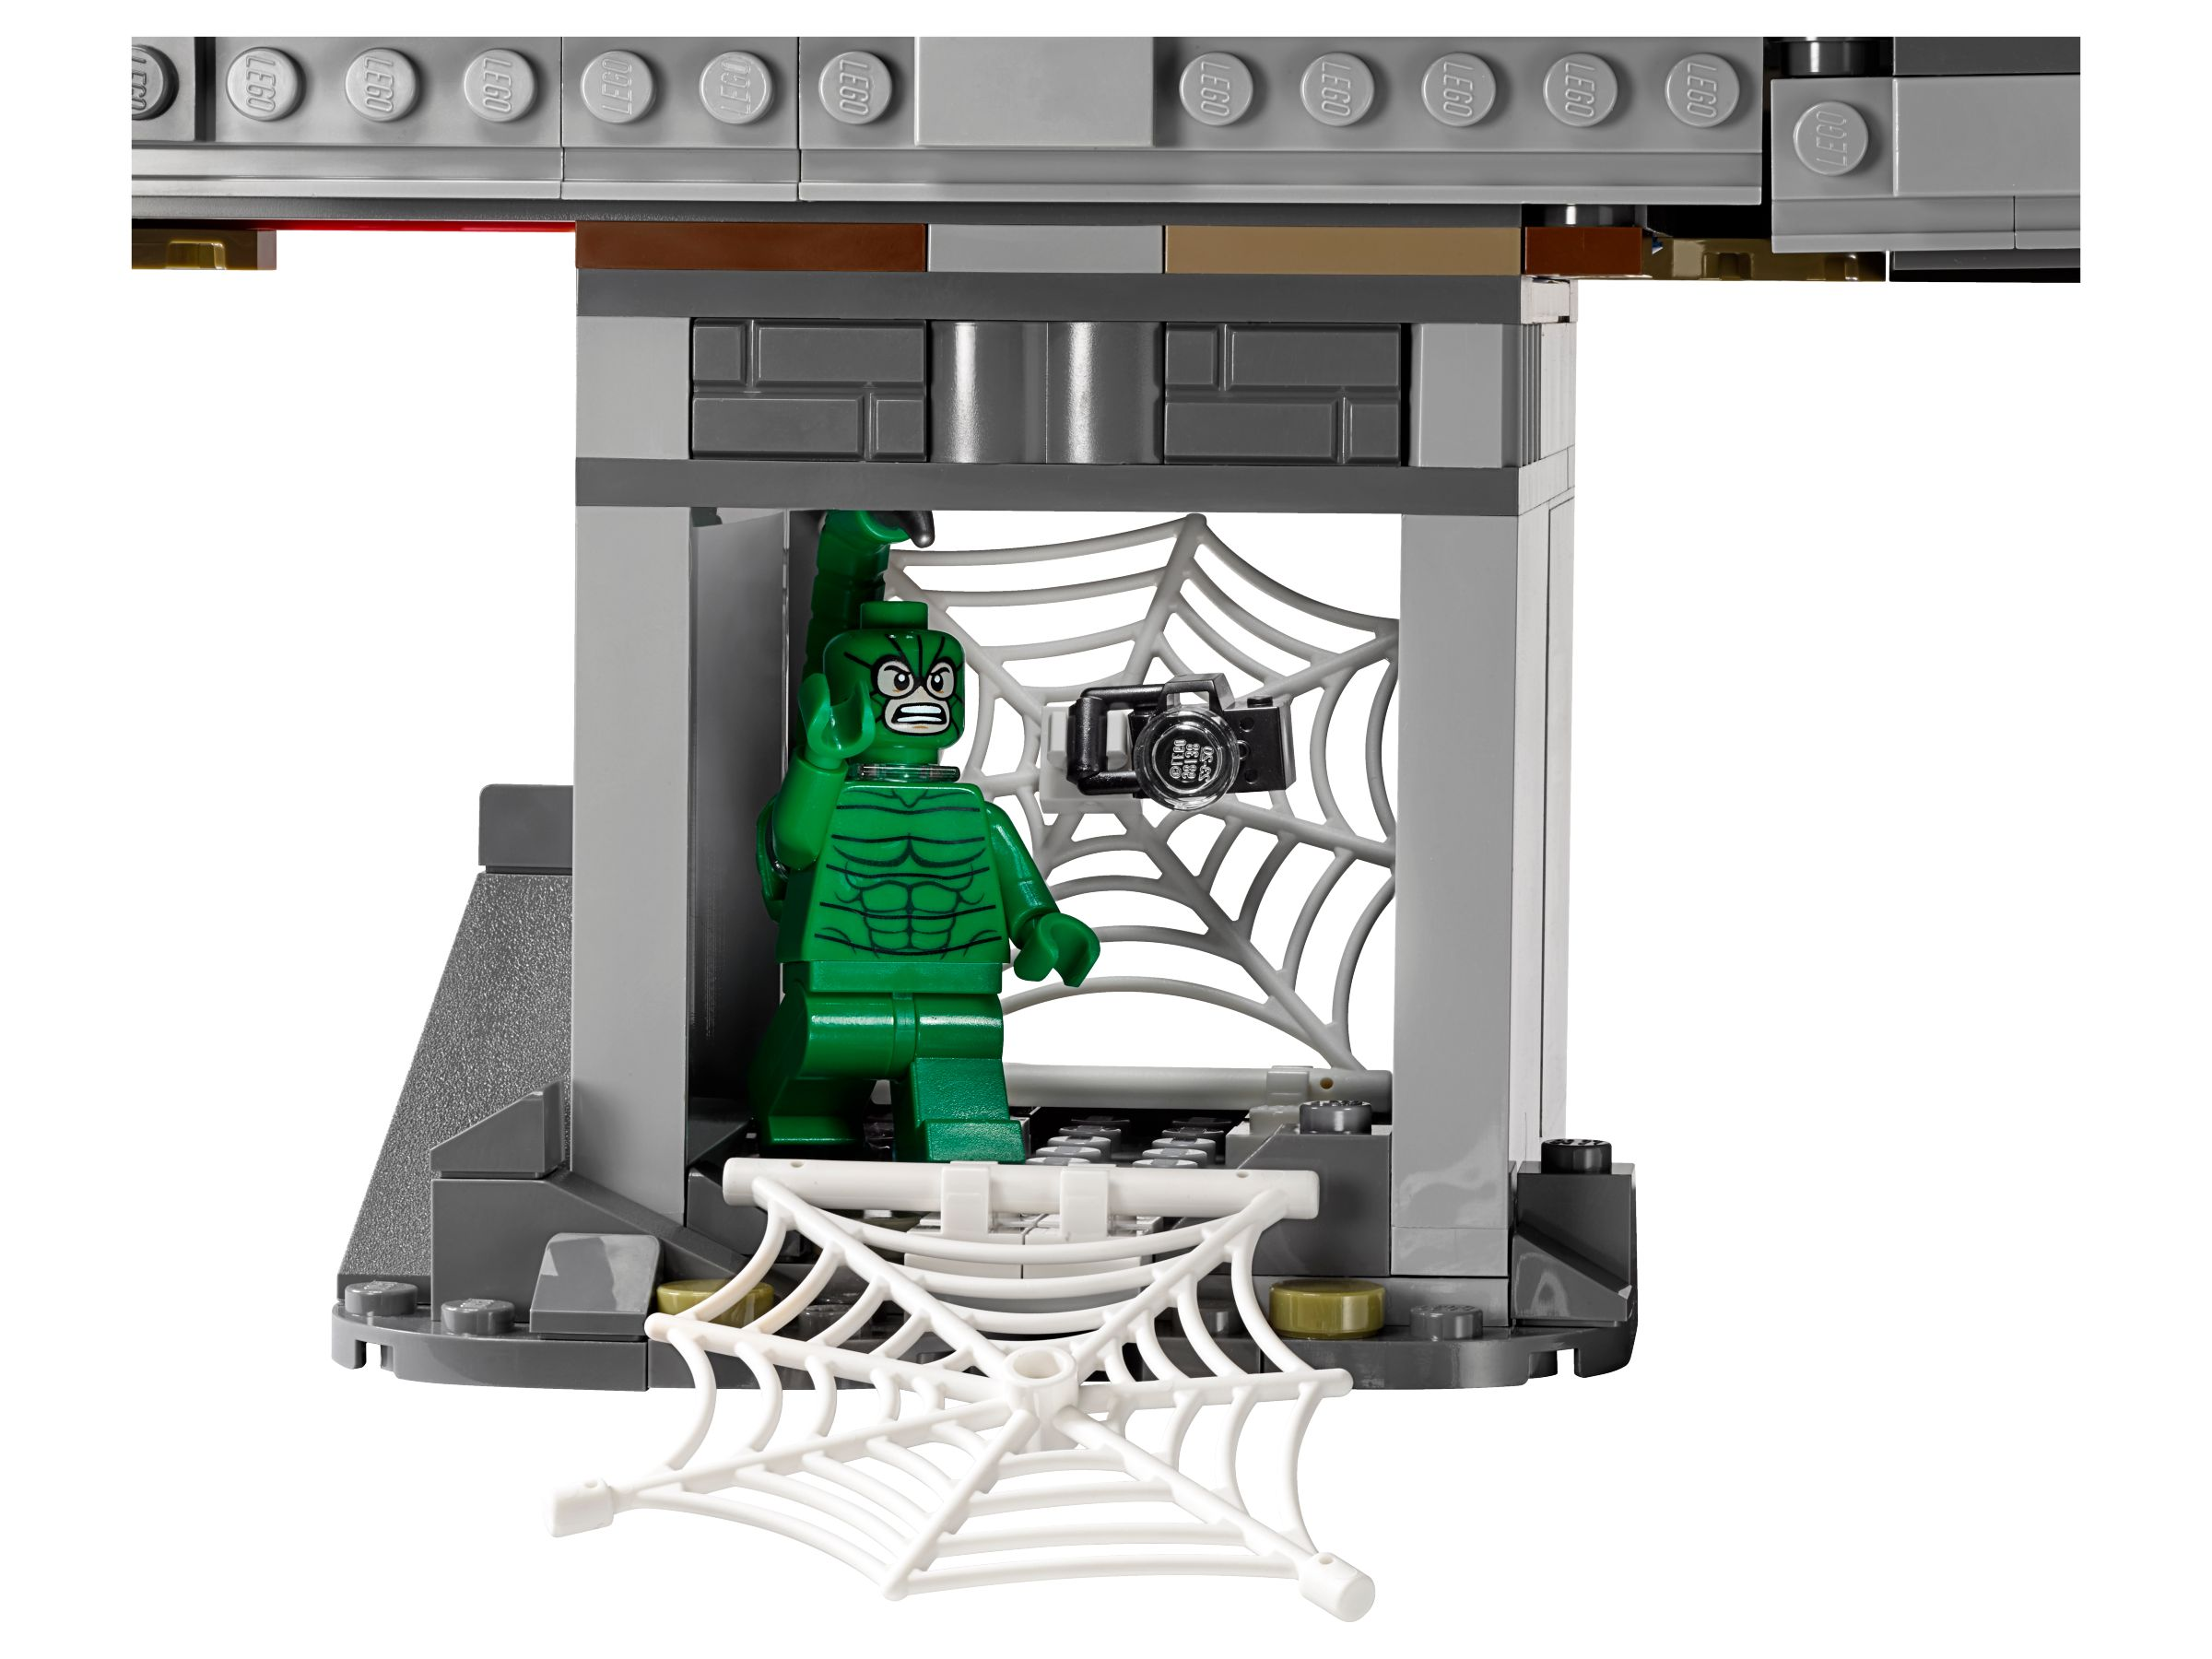 LEGO Super Heroes 76057 Spider-Man: Ultimatives Brückenduell der Web-Warriors LEGO_76057_alt8.jpg